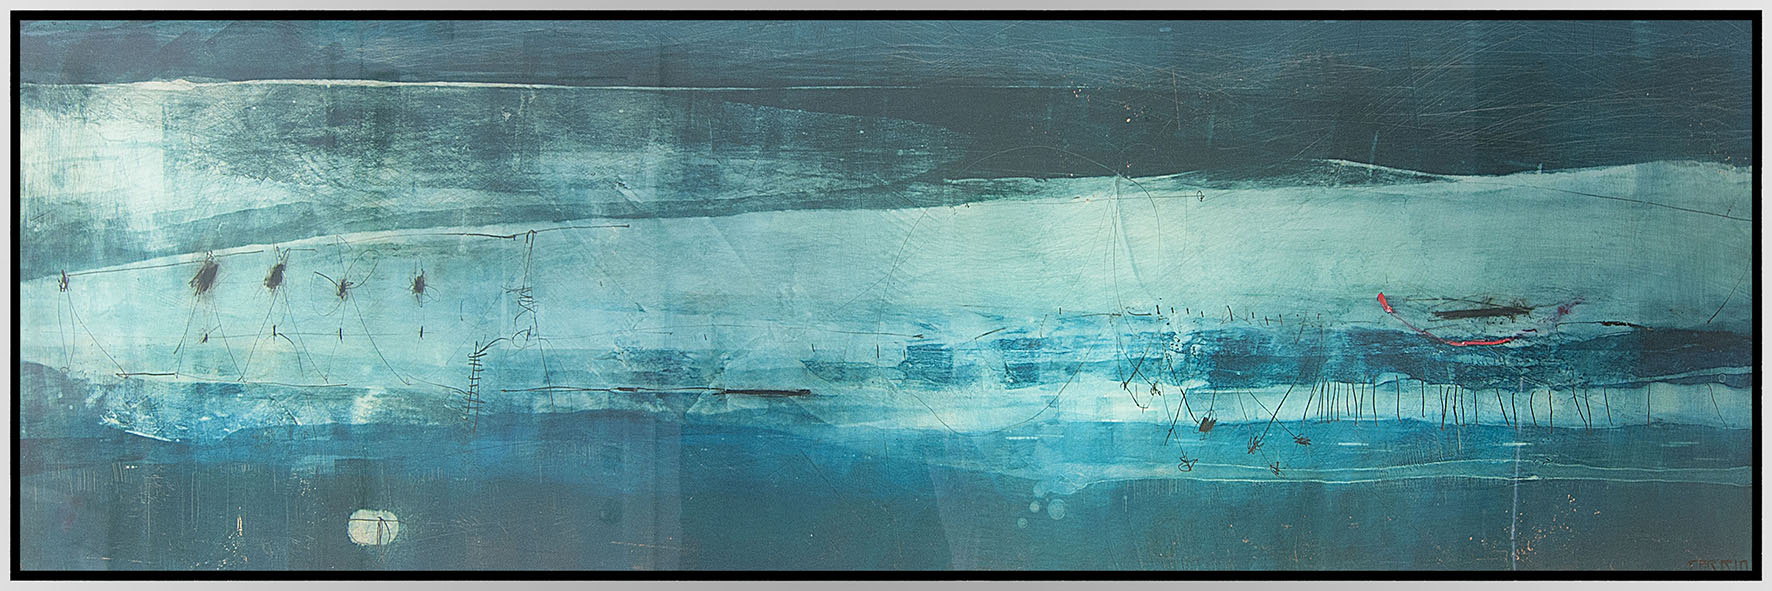 "Mixed Media on Wood Panel | 18"" X 60"" 